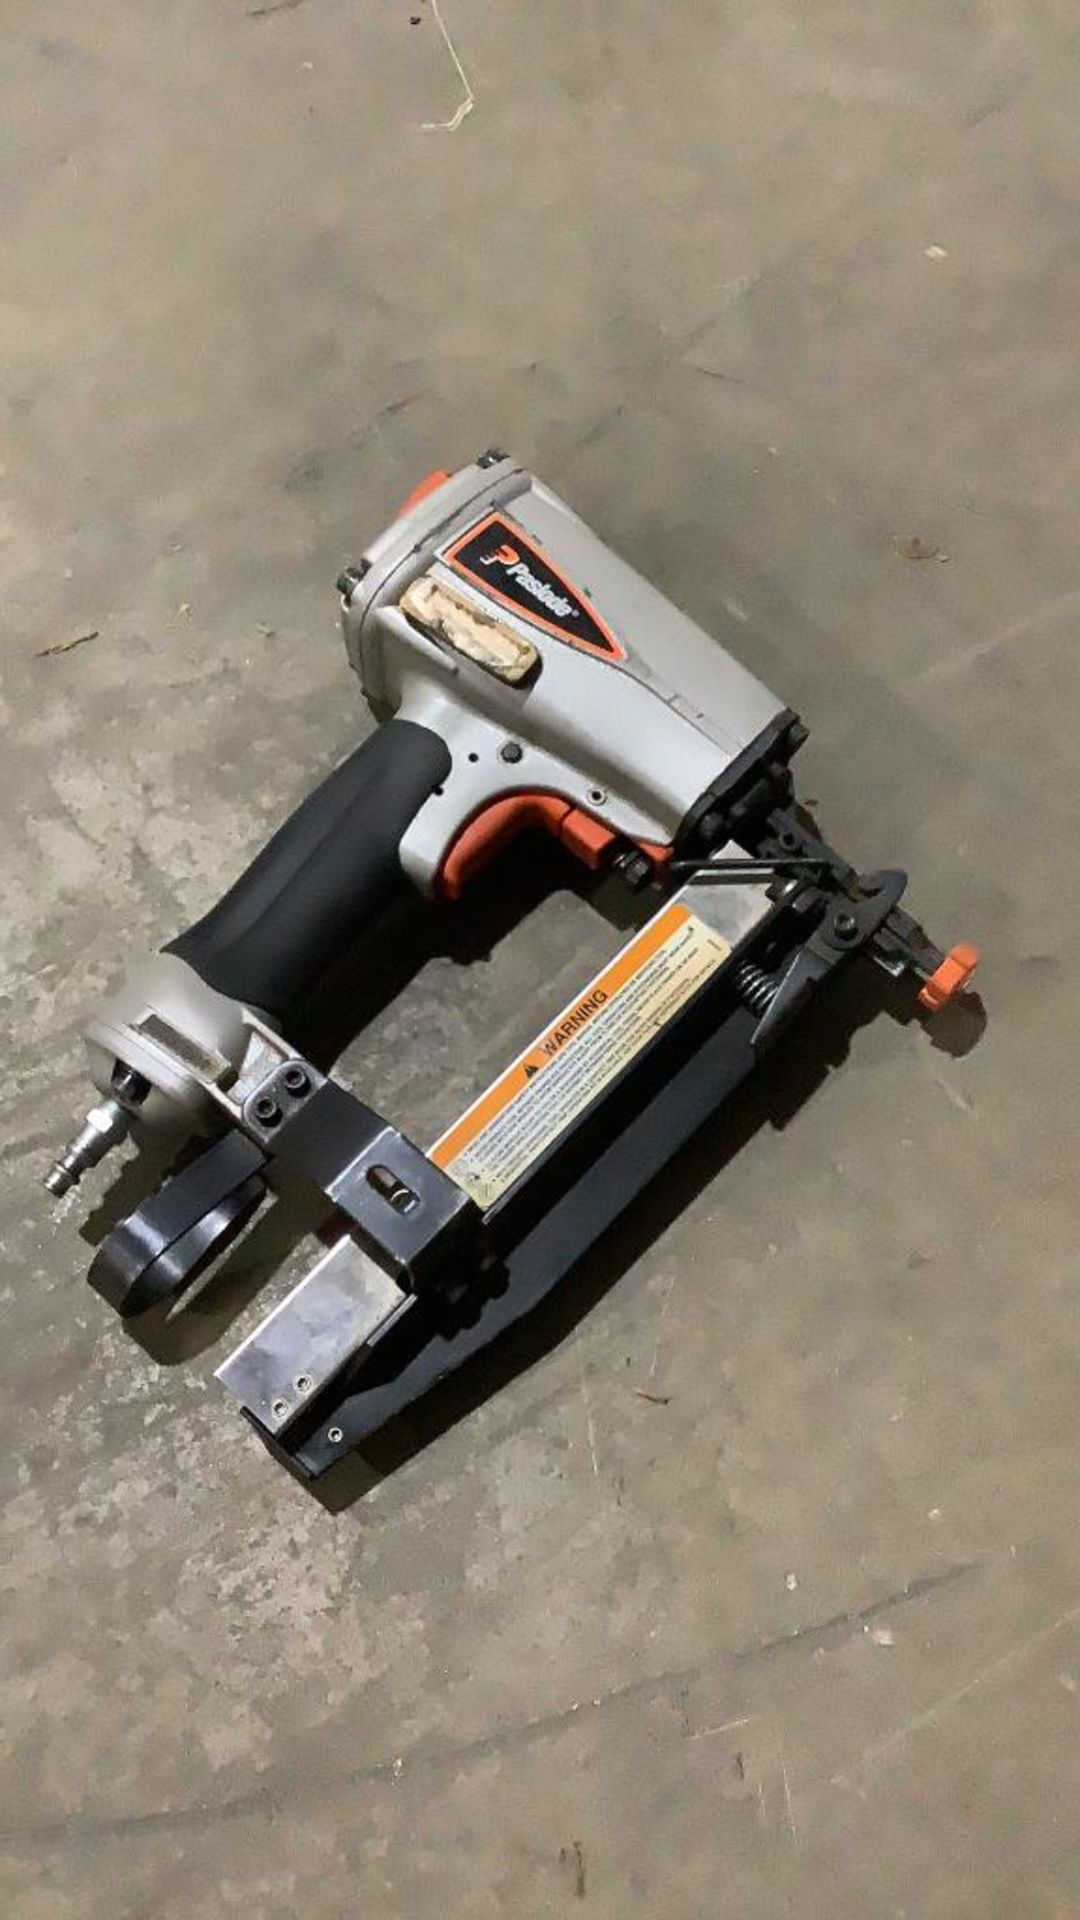 Lot 243 - Paslode Pneumatic Finish Nailer T250-F16